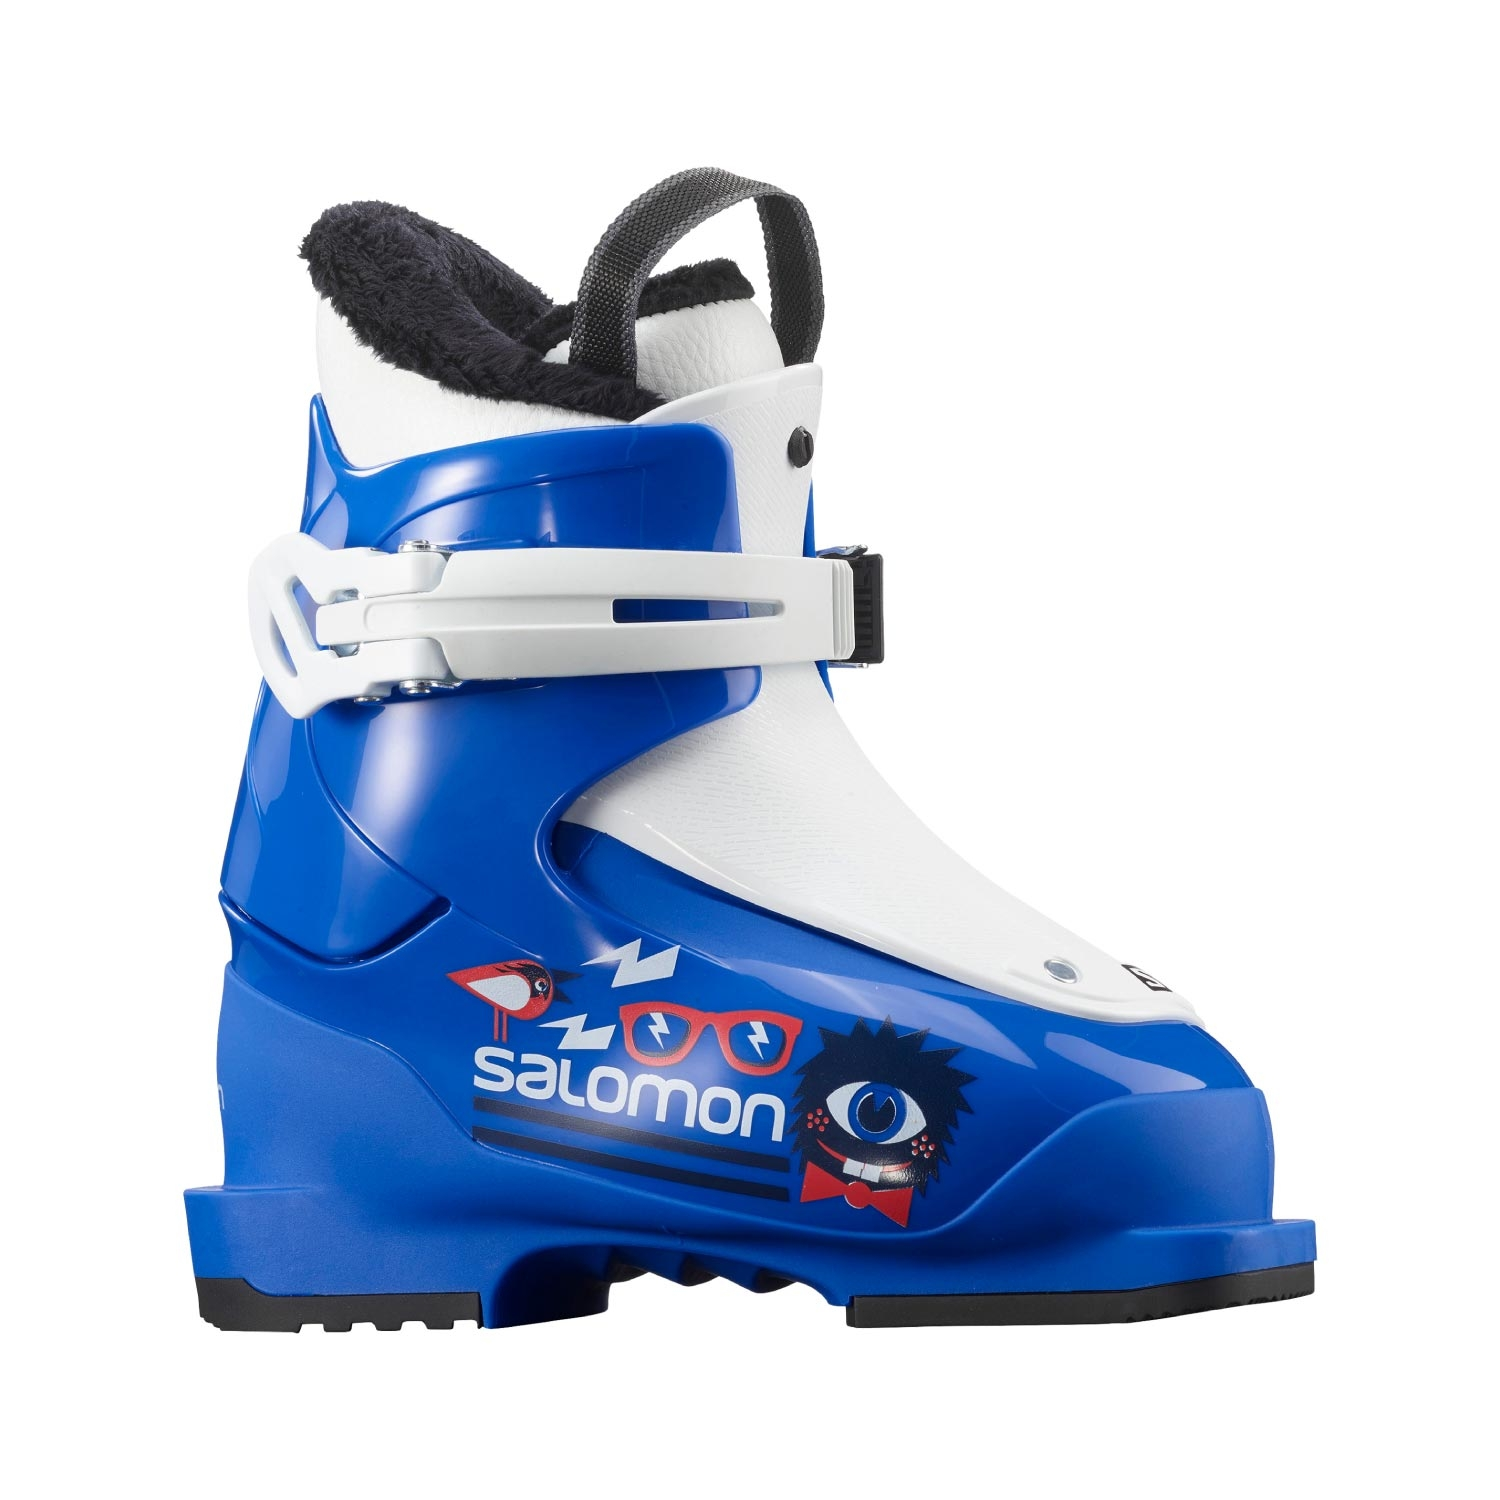 Salomon T1 Race Ski Boots Blue/White 2021